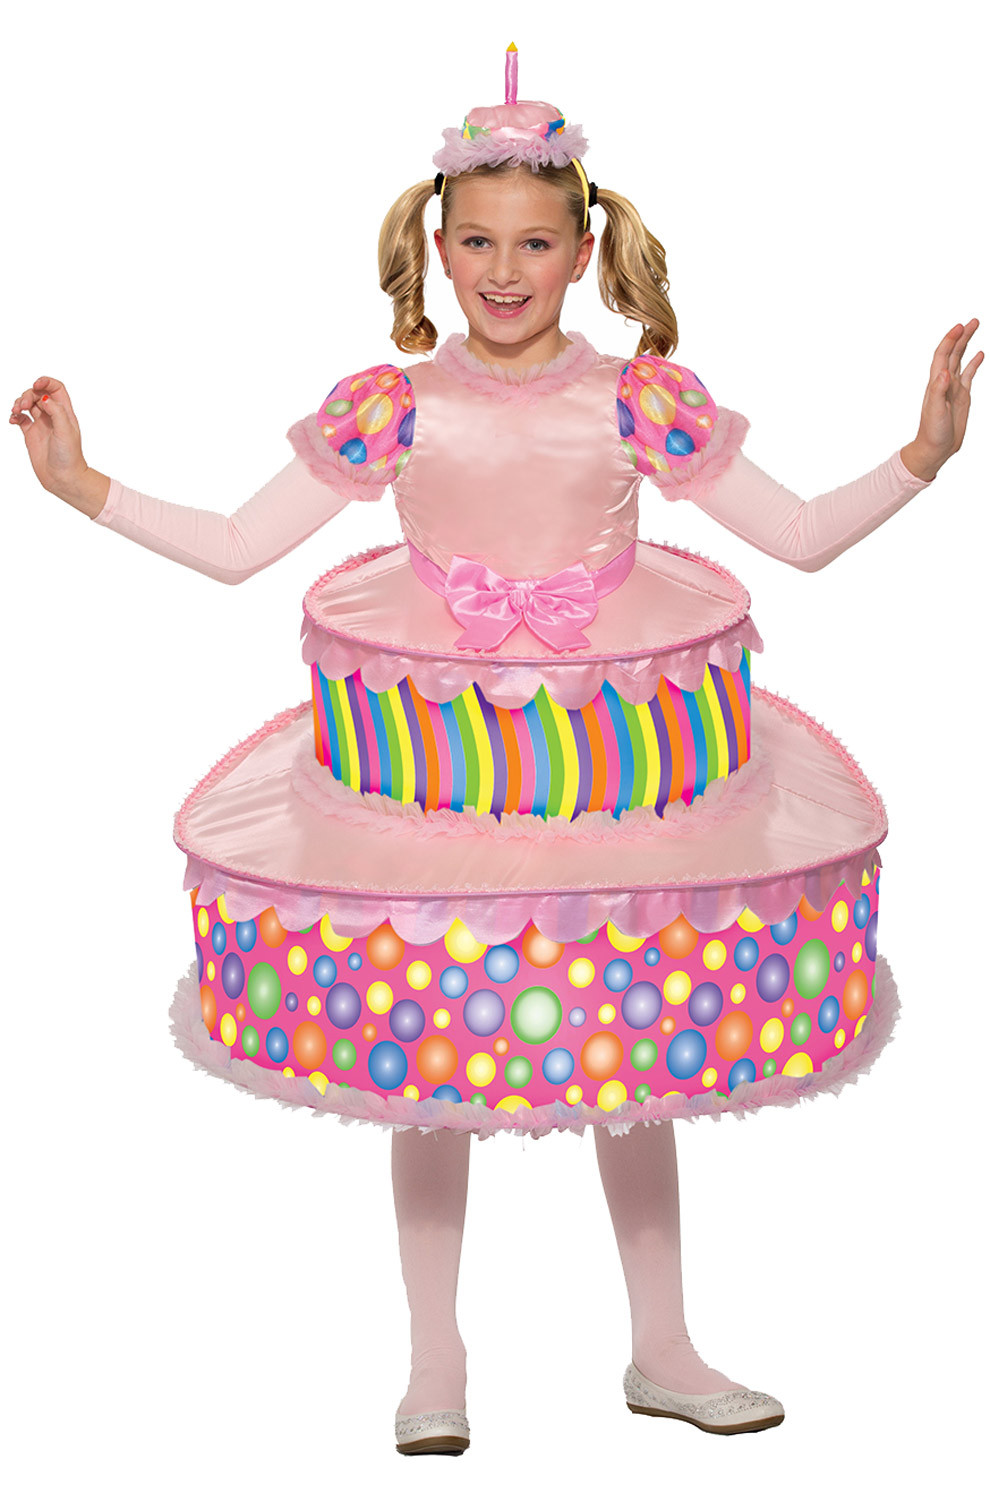 Birthday Cake Halloween Costume  Birthday Cake Child Costume PureCostumes